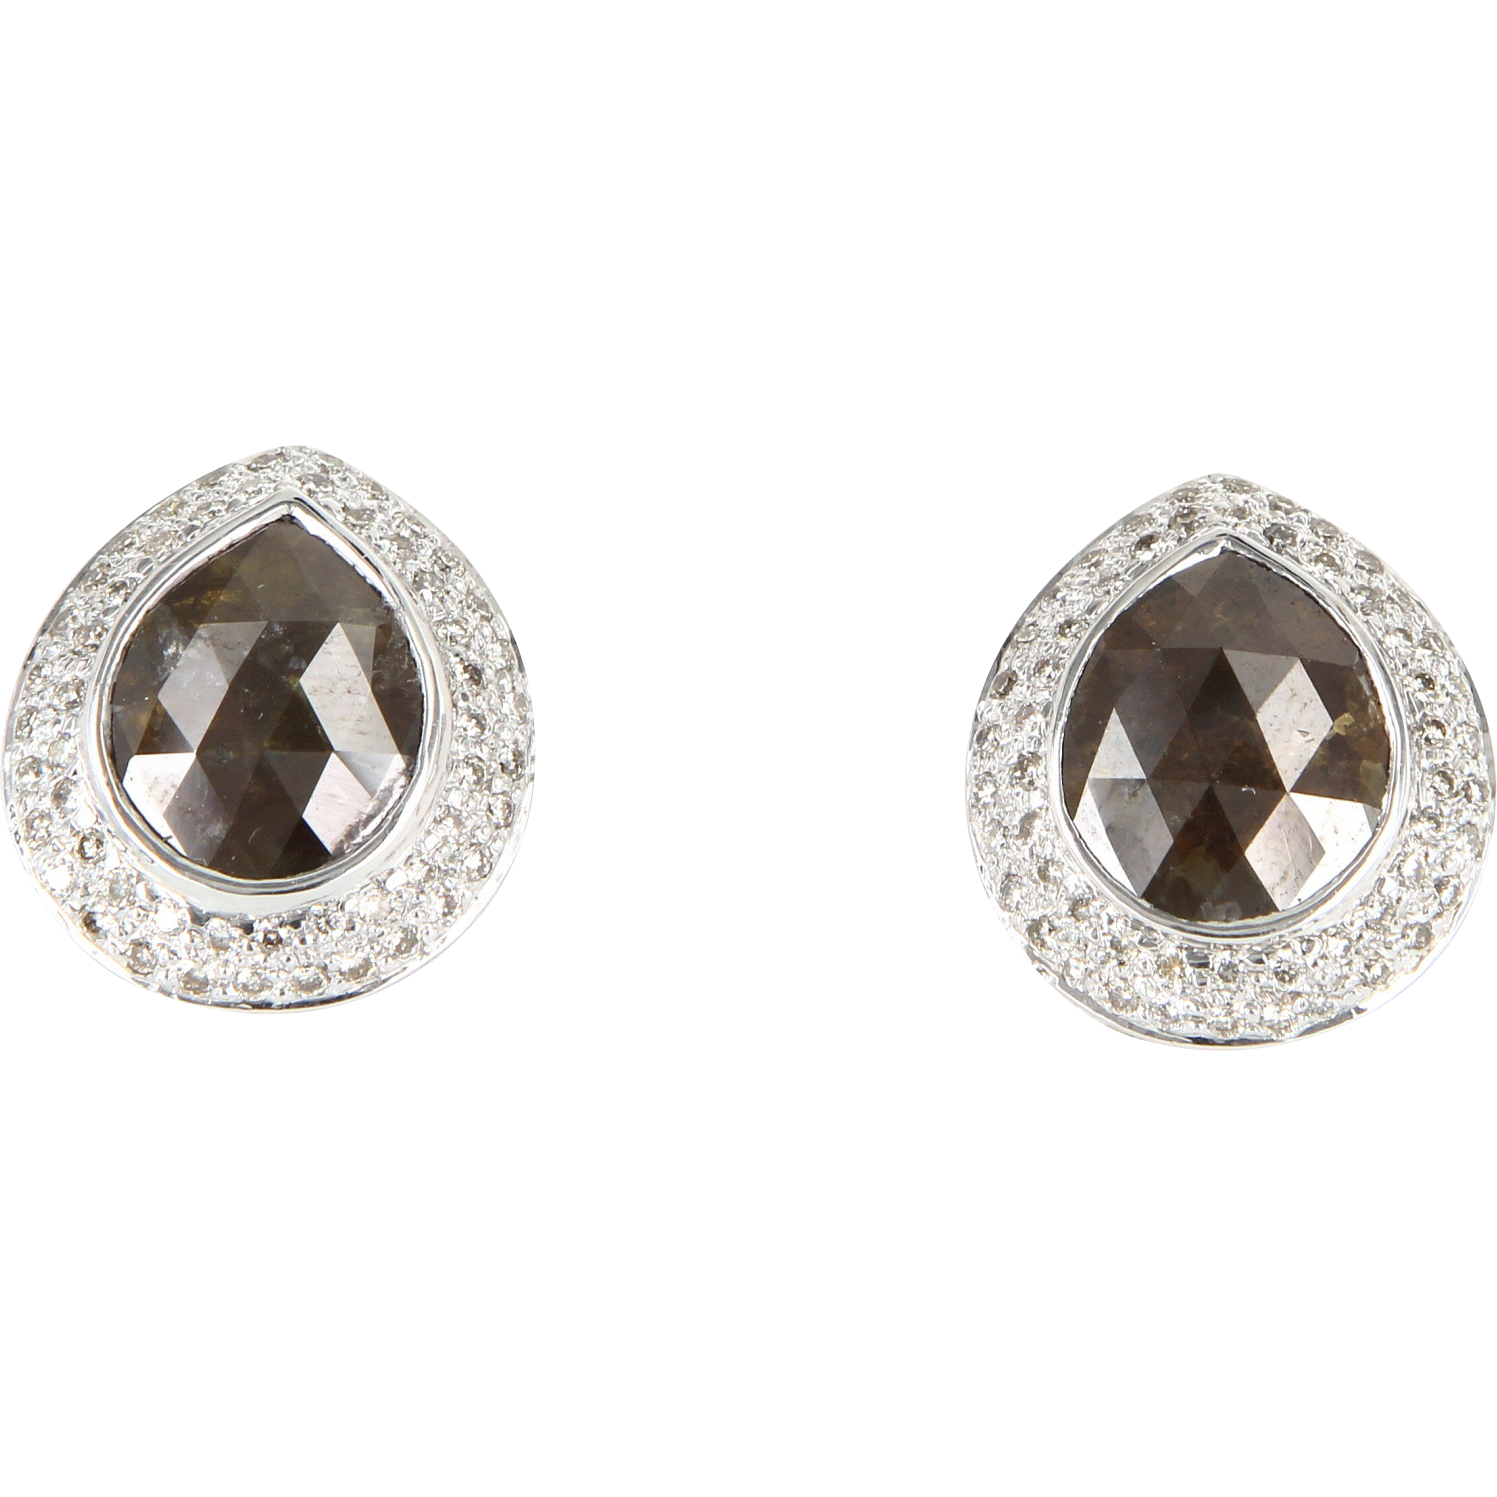 Vintage 8.90ct Rose Cut Diamond Stud Earrings 14 Karat White Gold Estate Fine Jewelry